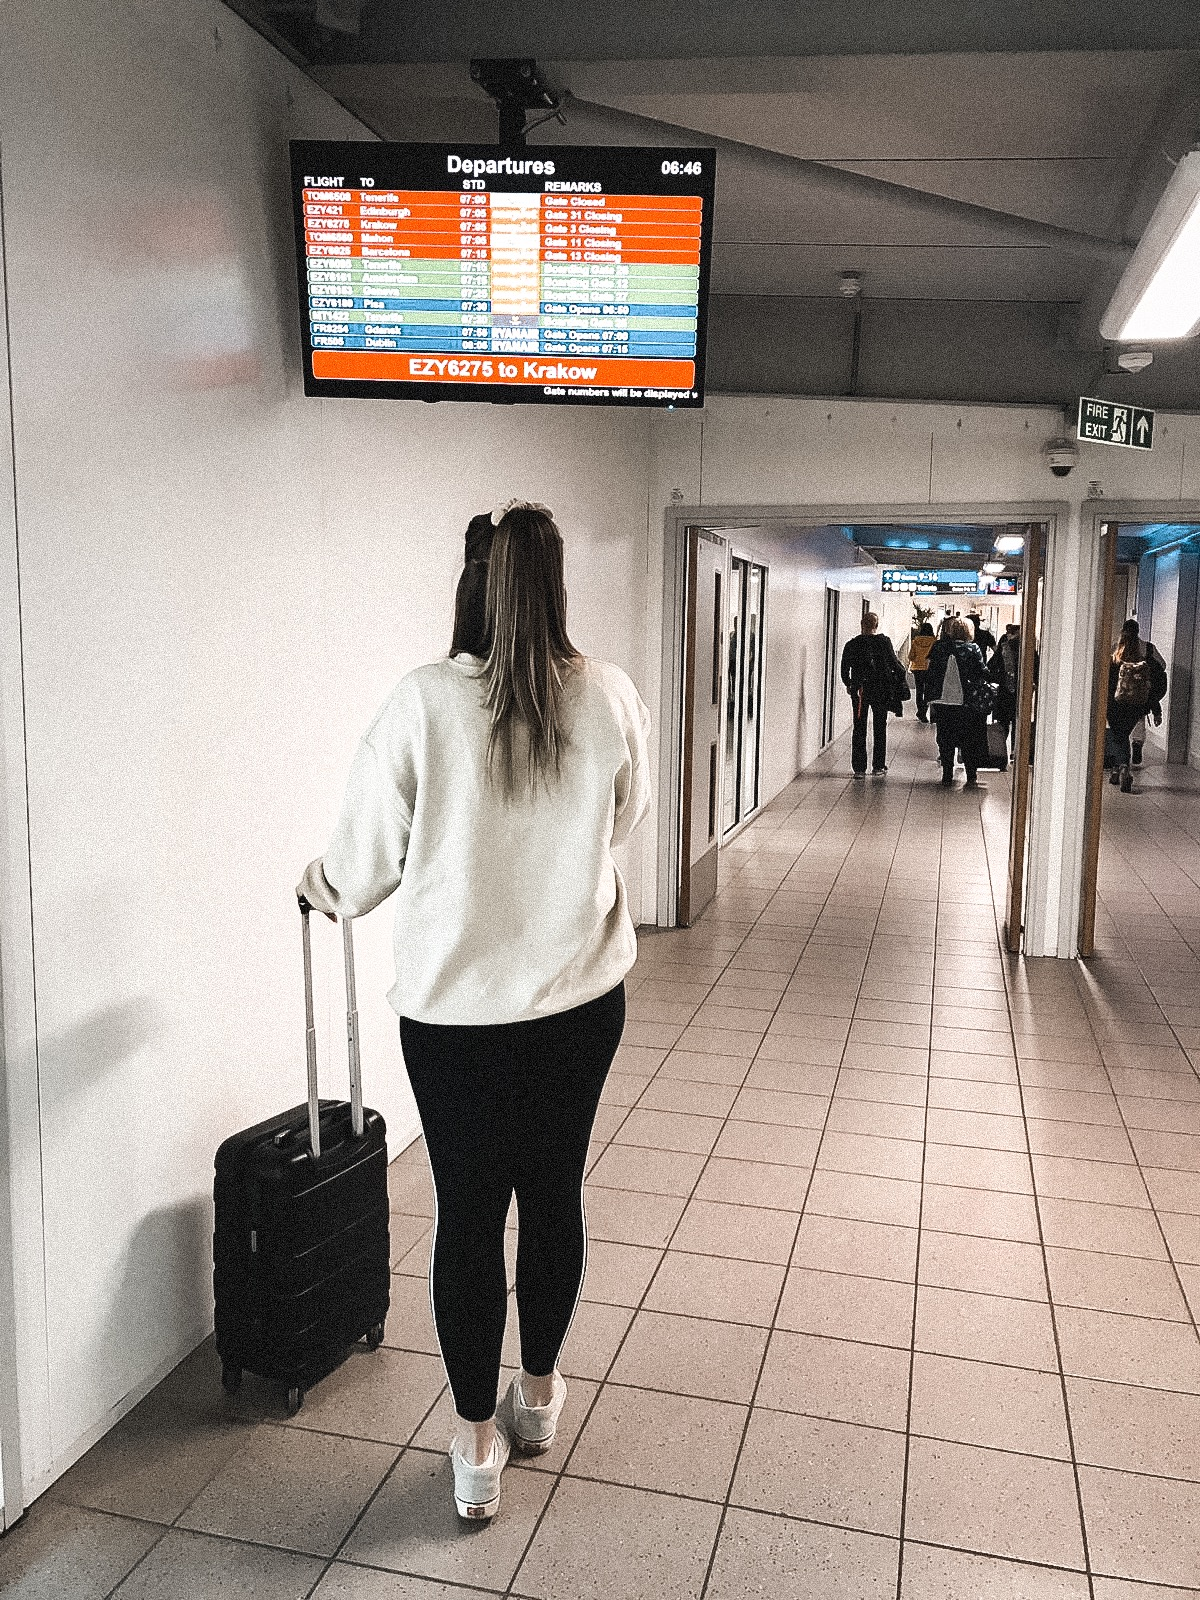 Girl looking at screen in the airport